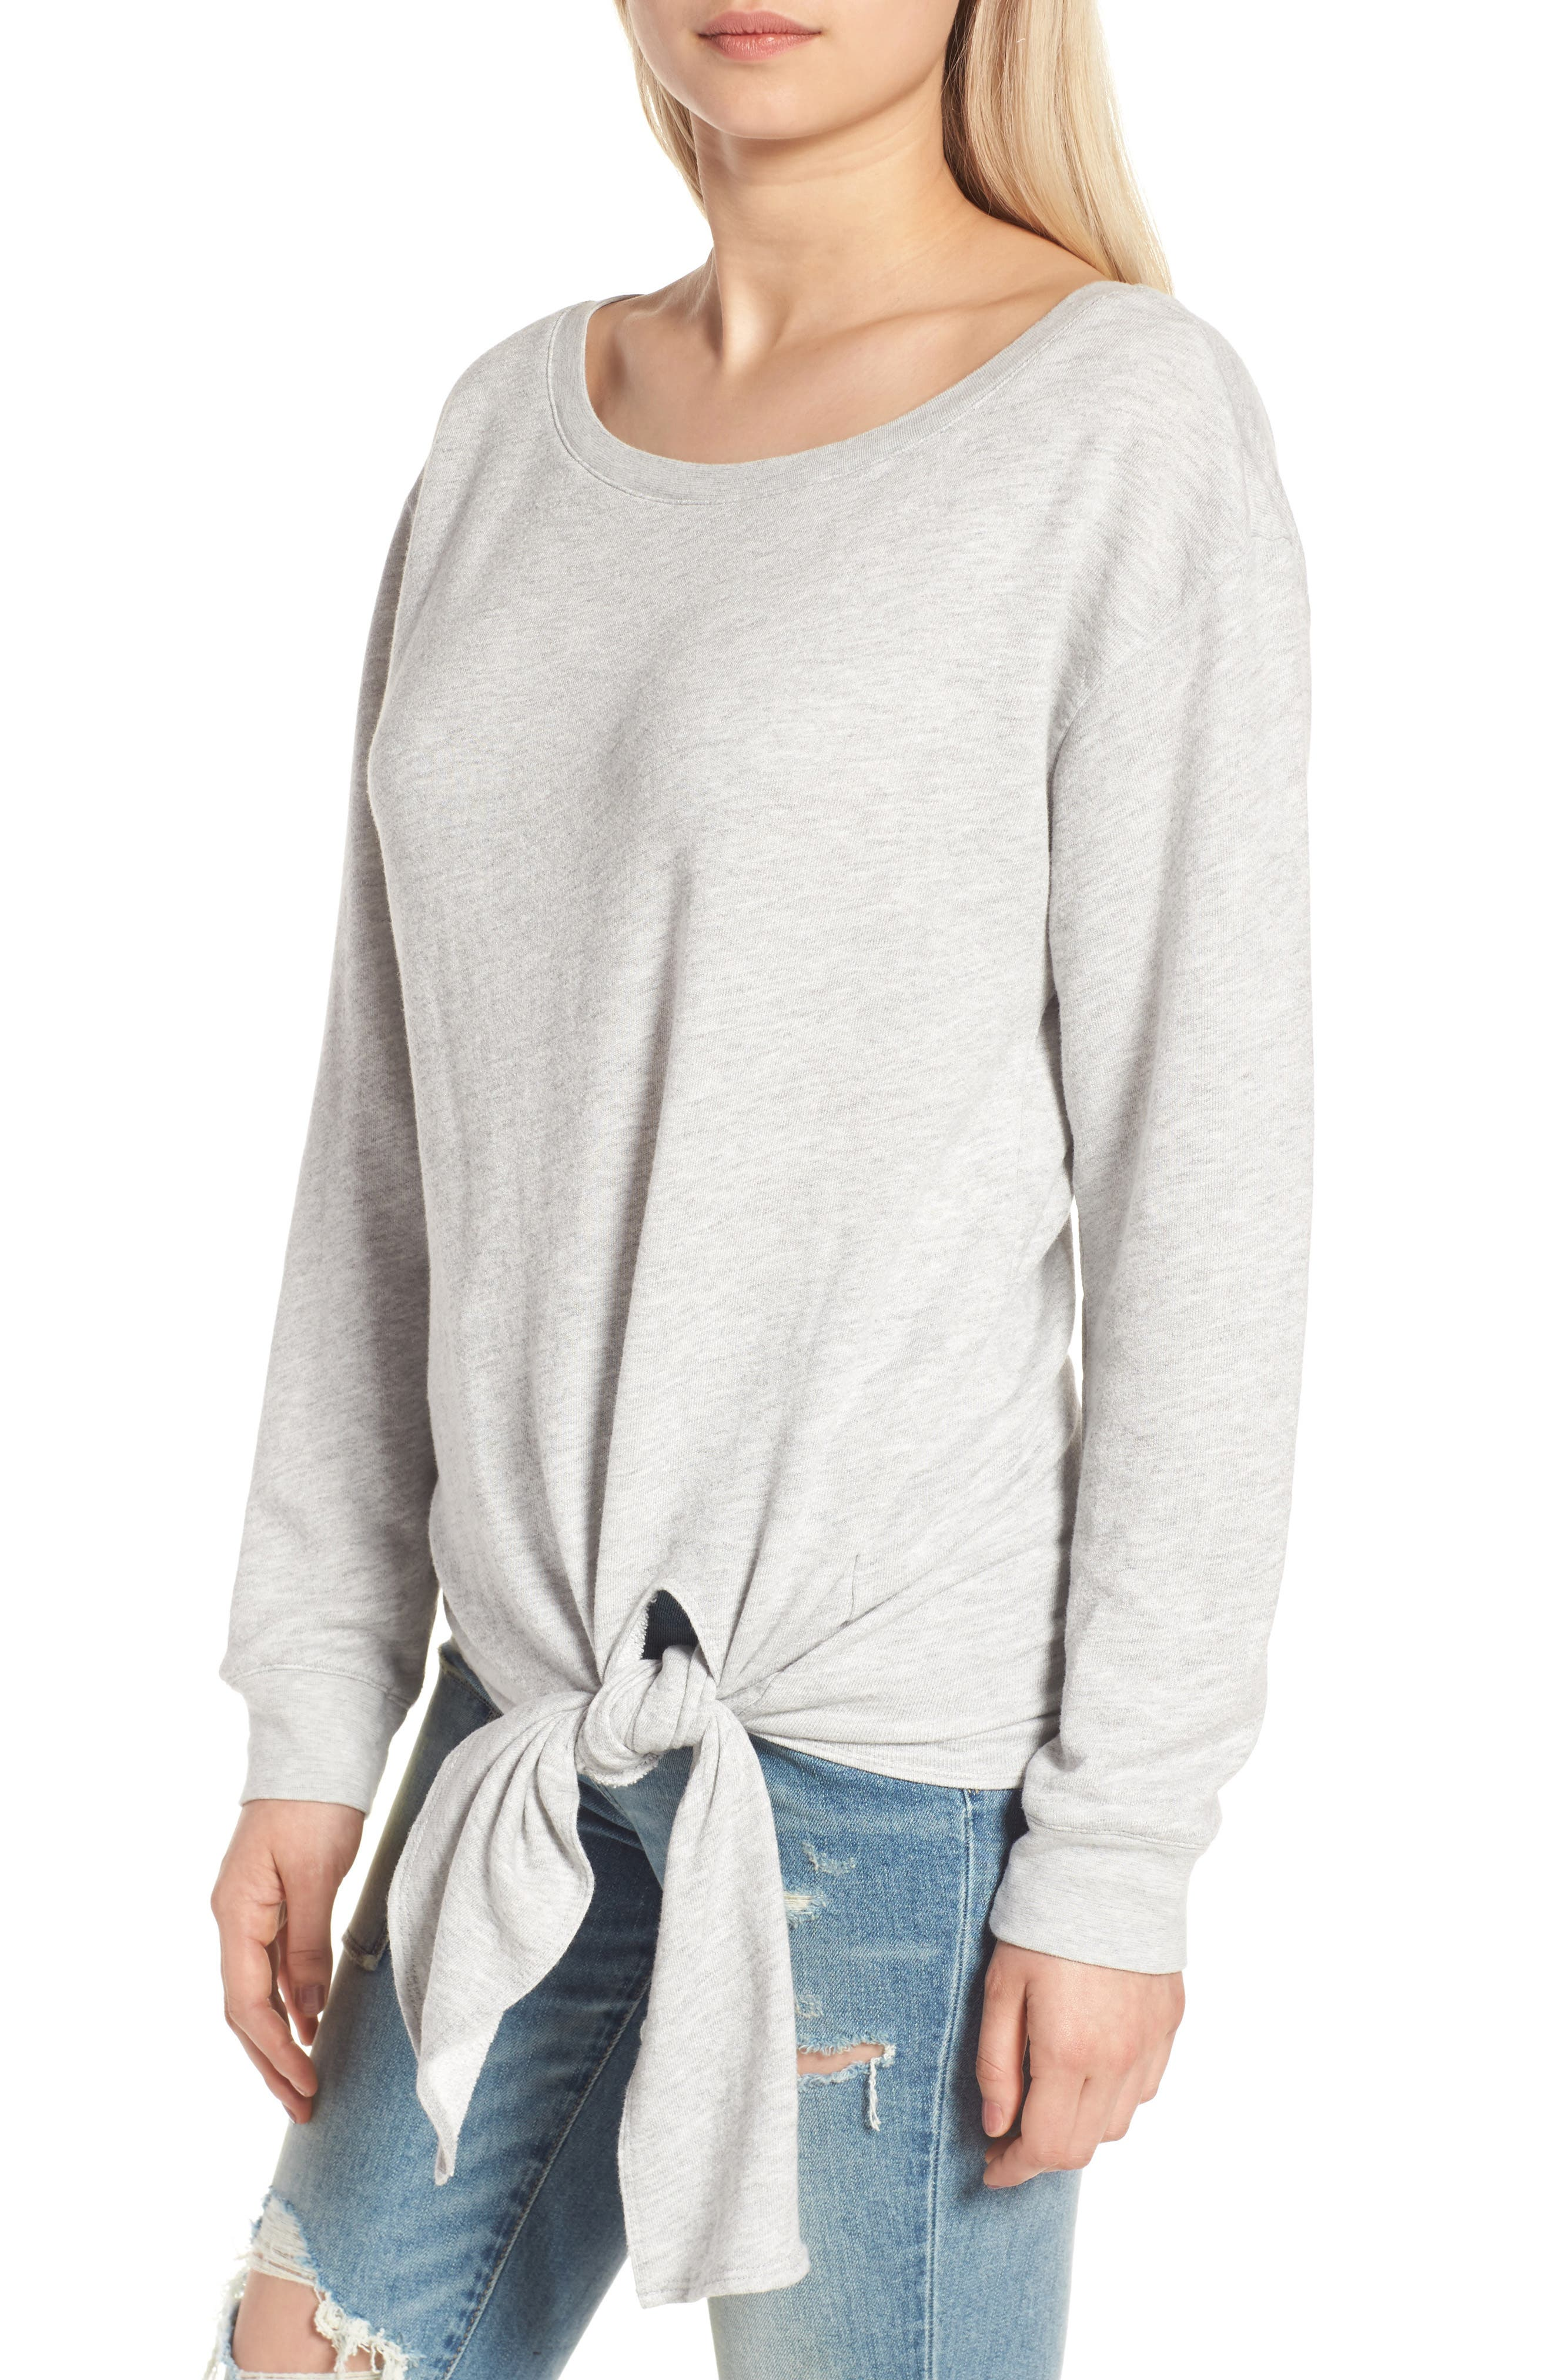 HINGE,                             Tie Front Pullover,                             Alternate thumbnail 4, color,                             020